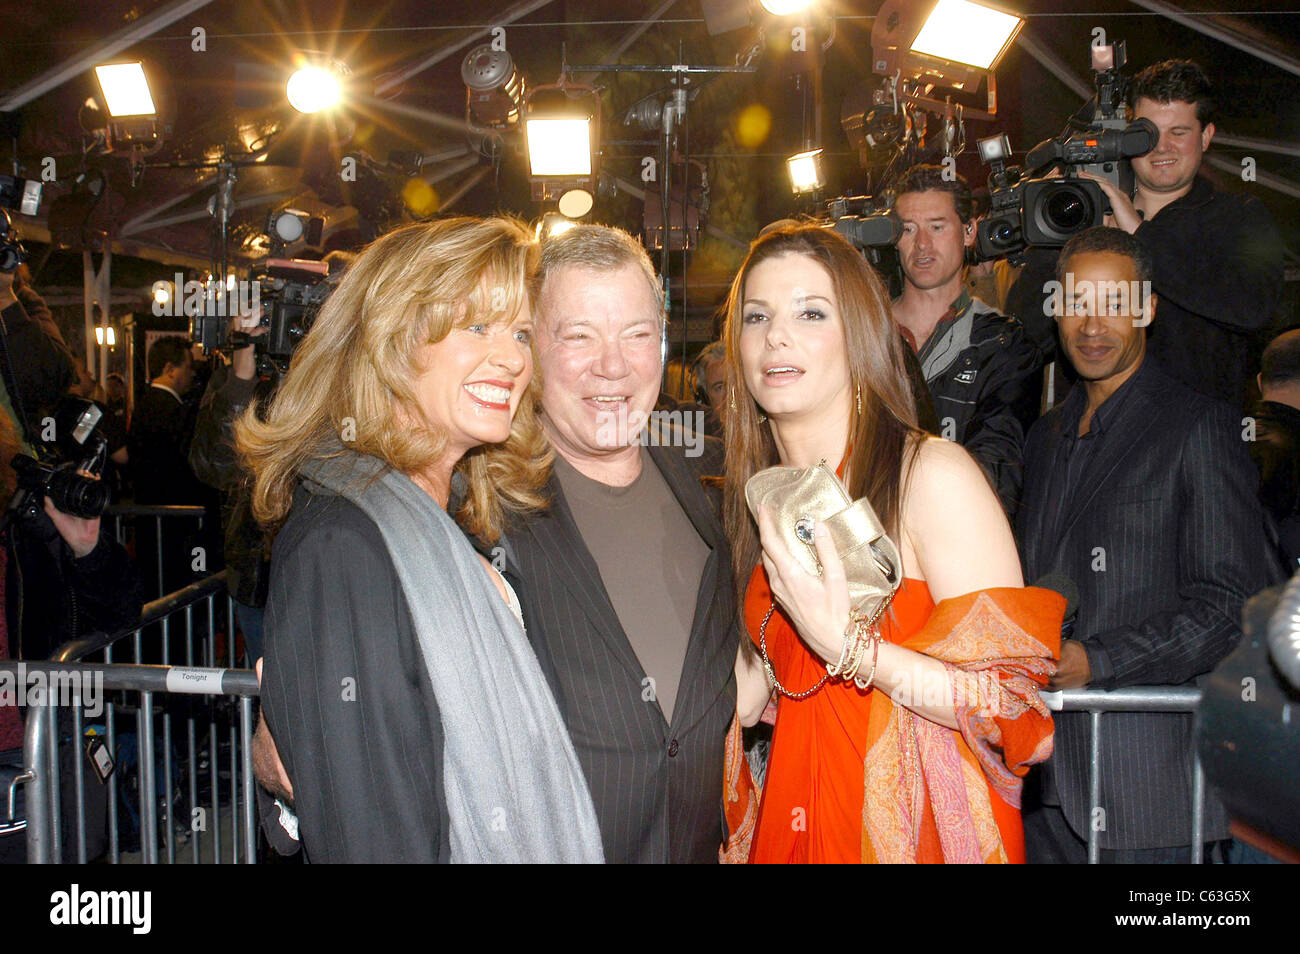 William Shatner, Sandra Bullock at arrivals for MISS CONGENIALITY 2 Premiere, Grauman's Chinese Theatre, Los Angeles, Stock Photo